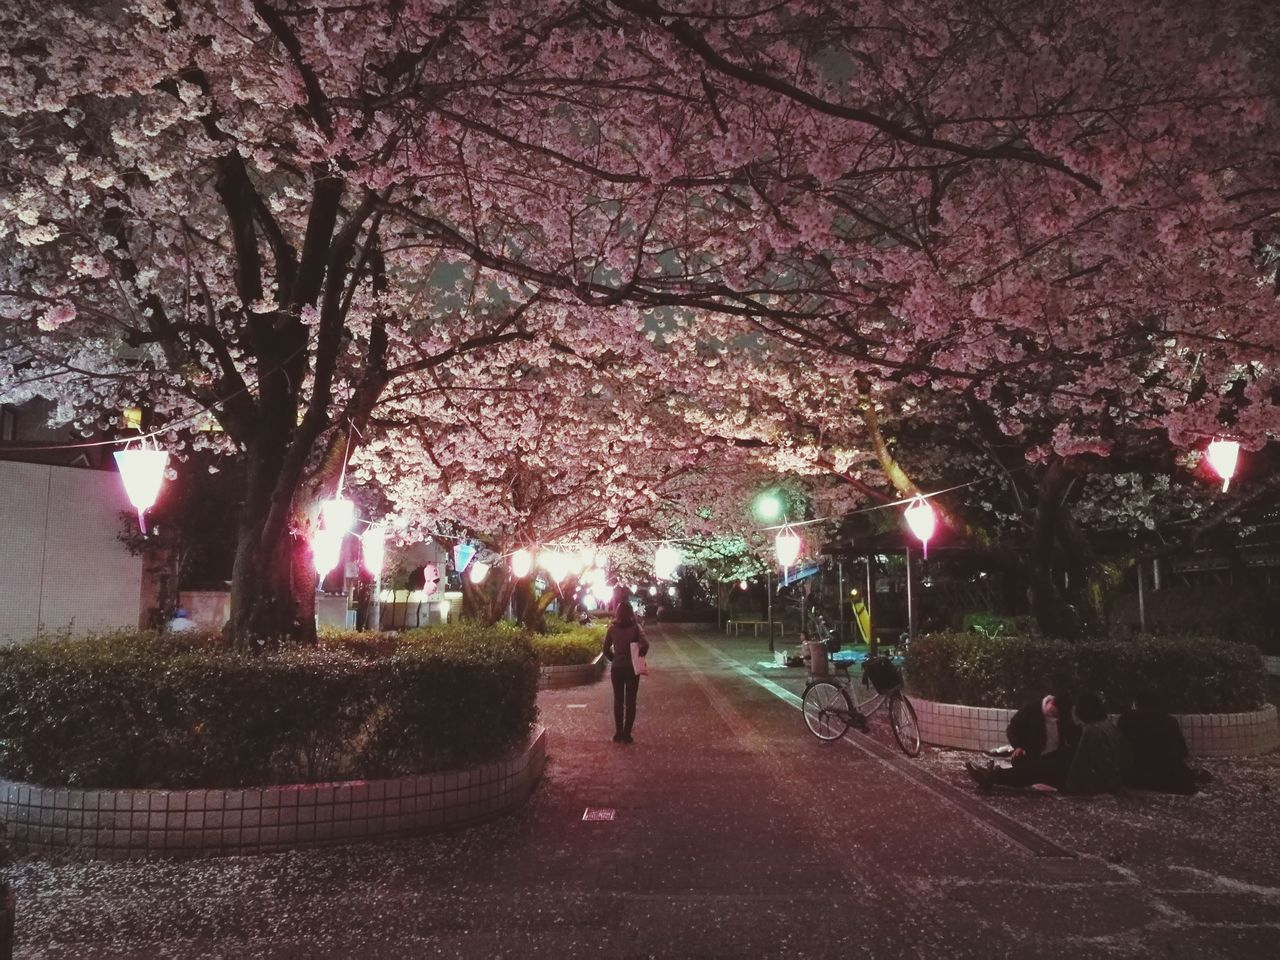 tree, real people, branch, walking, men, nature, flower, blossom, outdoors, springtime, growth, full length, beauty in nature, women, tree trunk, leisure activity, park - man made space, walkway, large group of people, illuminated, night, fragility, sky, city, freshness, people